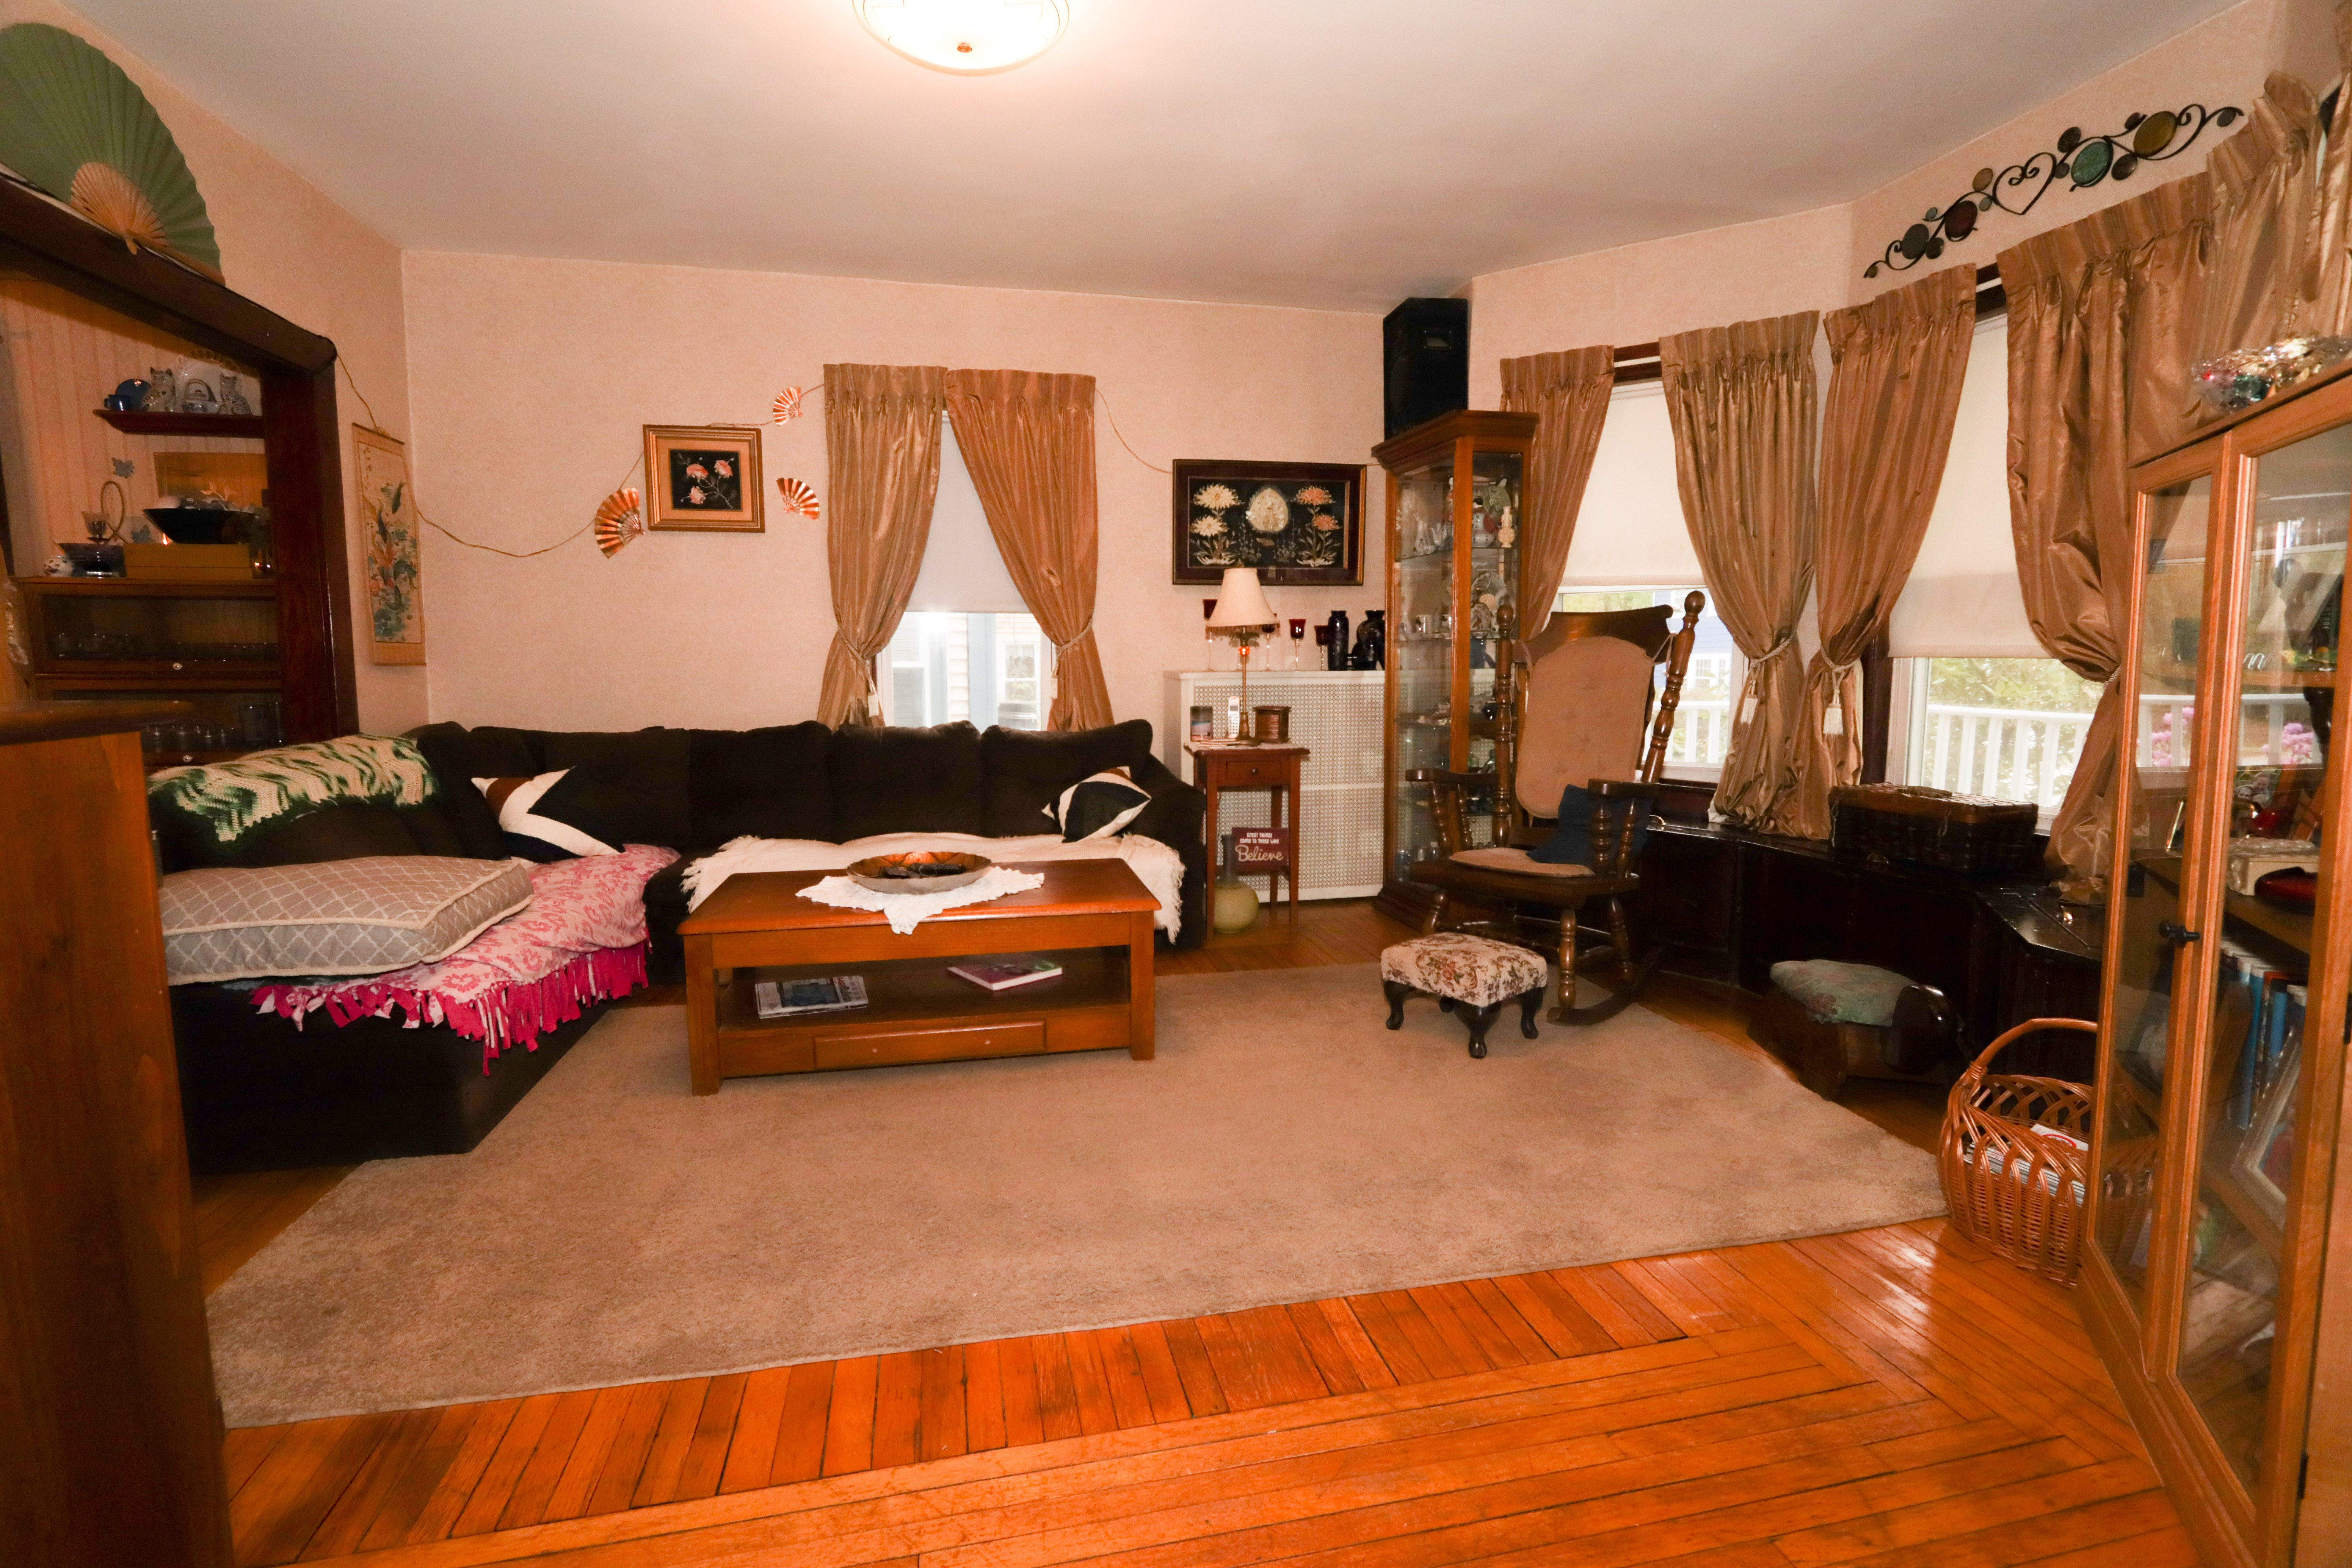 34 1/2 Russell Ave Nashua NH 03060 South Nashua 4 Bed New Englander House for Sale